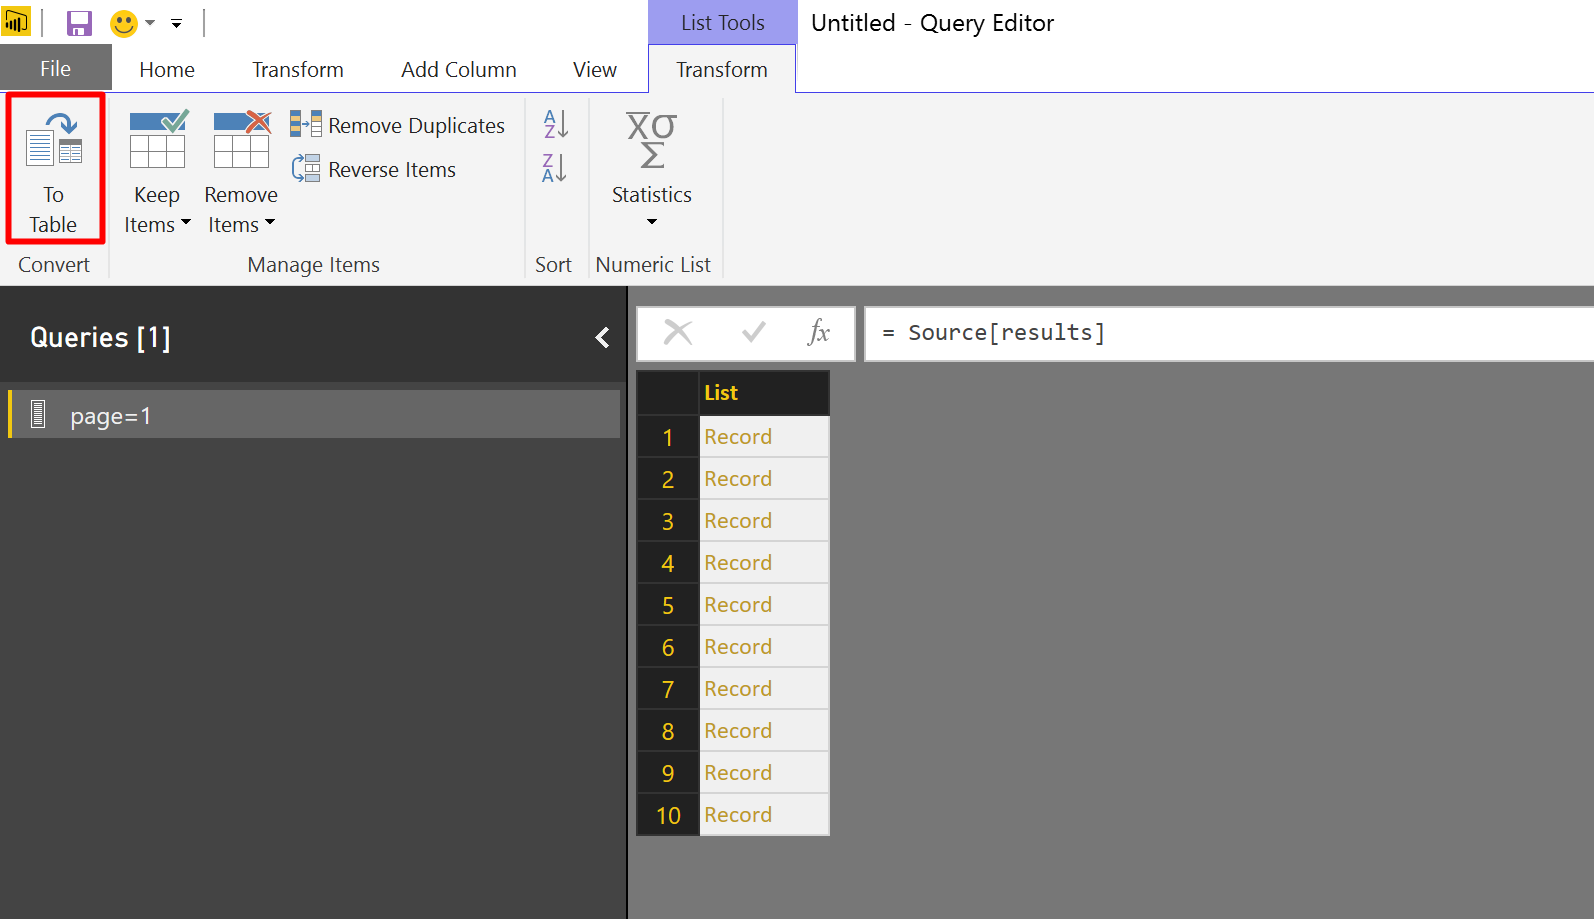 Query Functions in Power BI are made easier